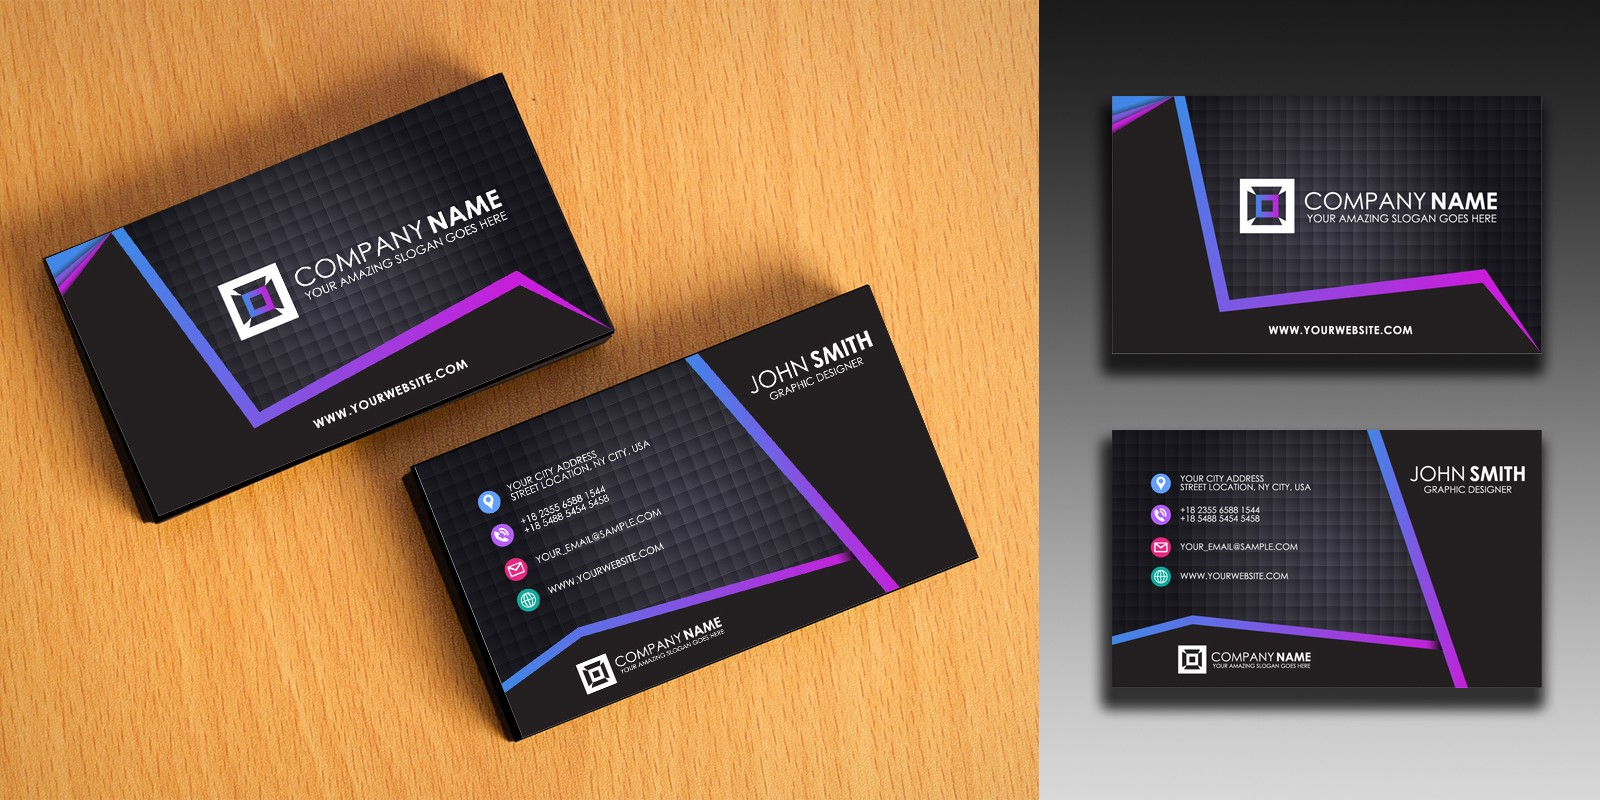 Clean and simple business card template business card templates clean and simple business card template accmission Choice Image